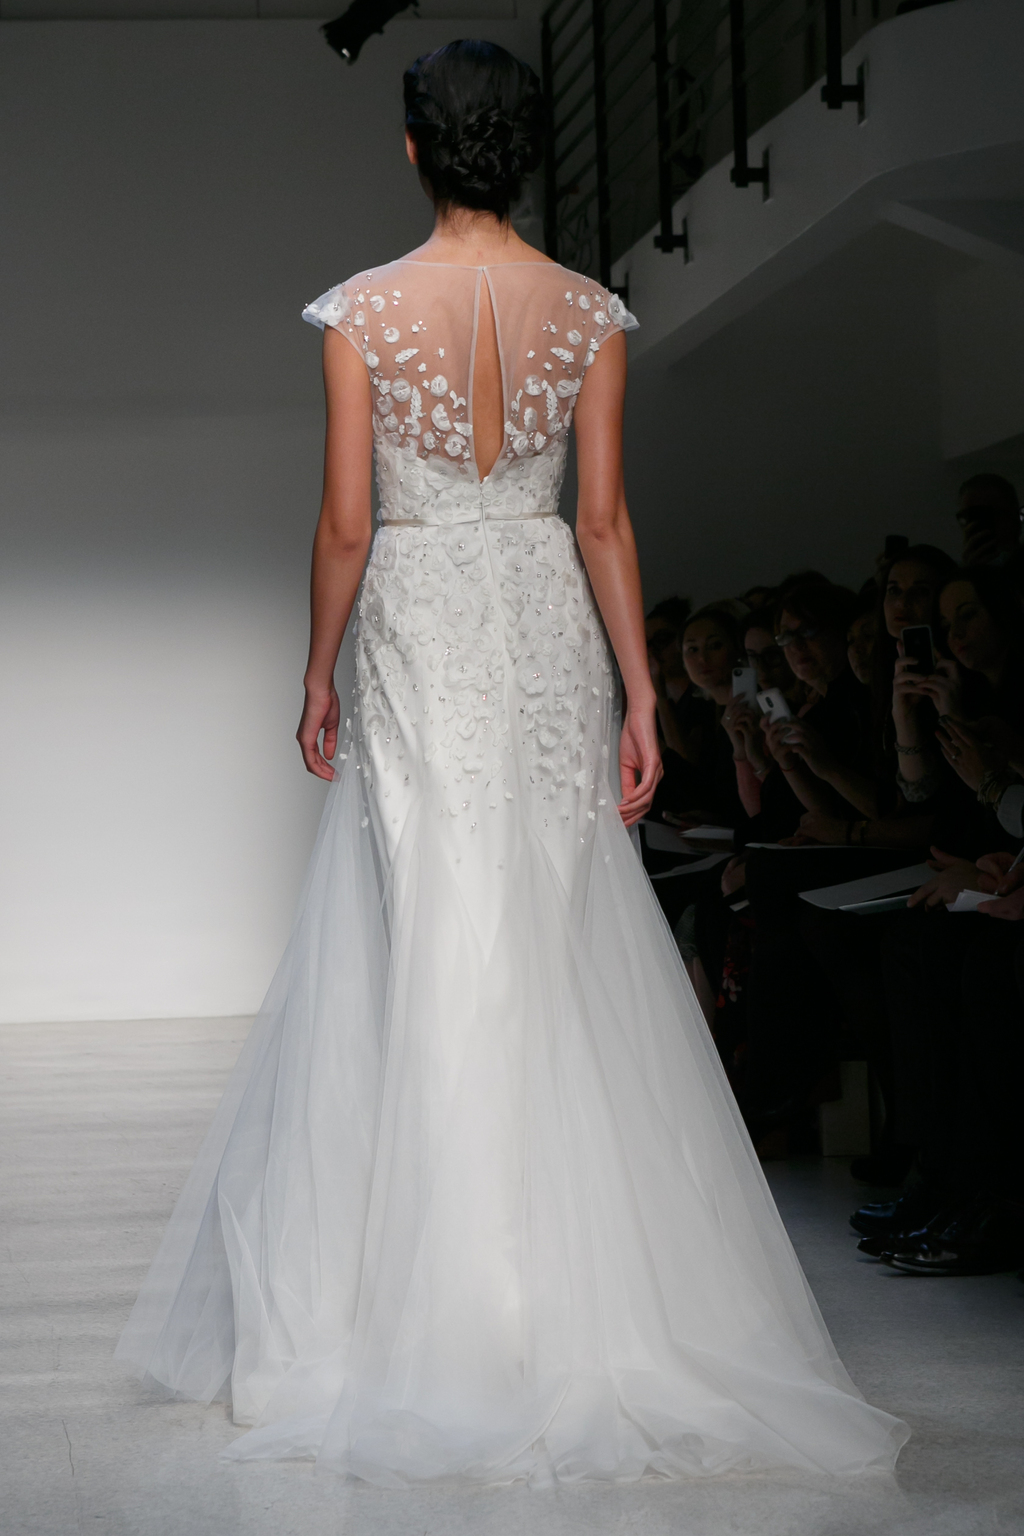 Fall-2013-wedding-dress-by-christos-amsale-bridal-6c.full